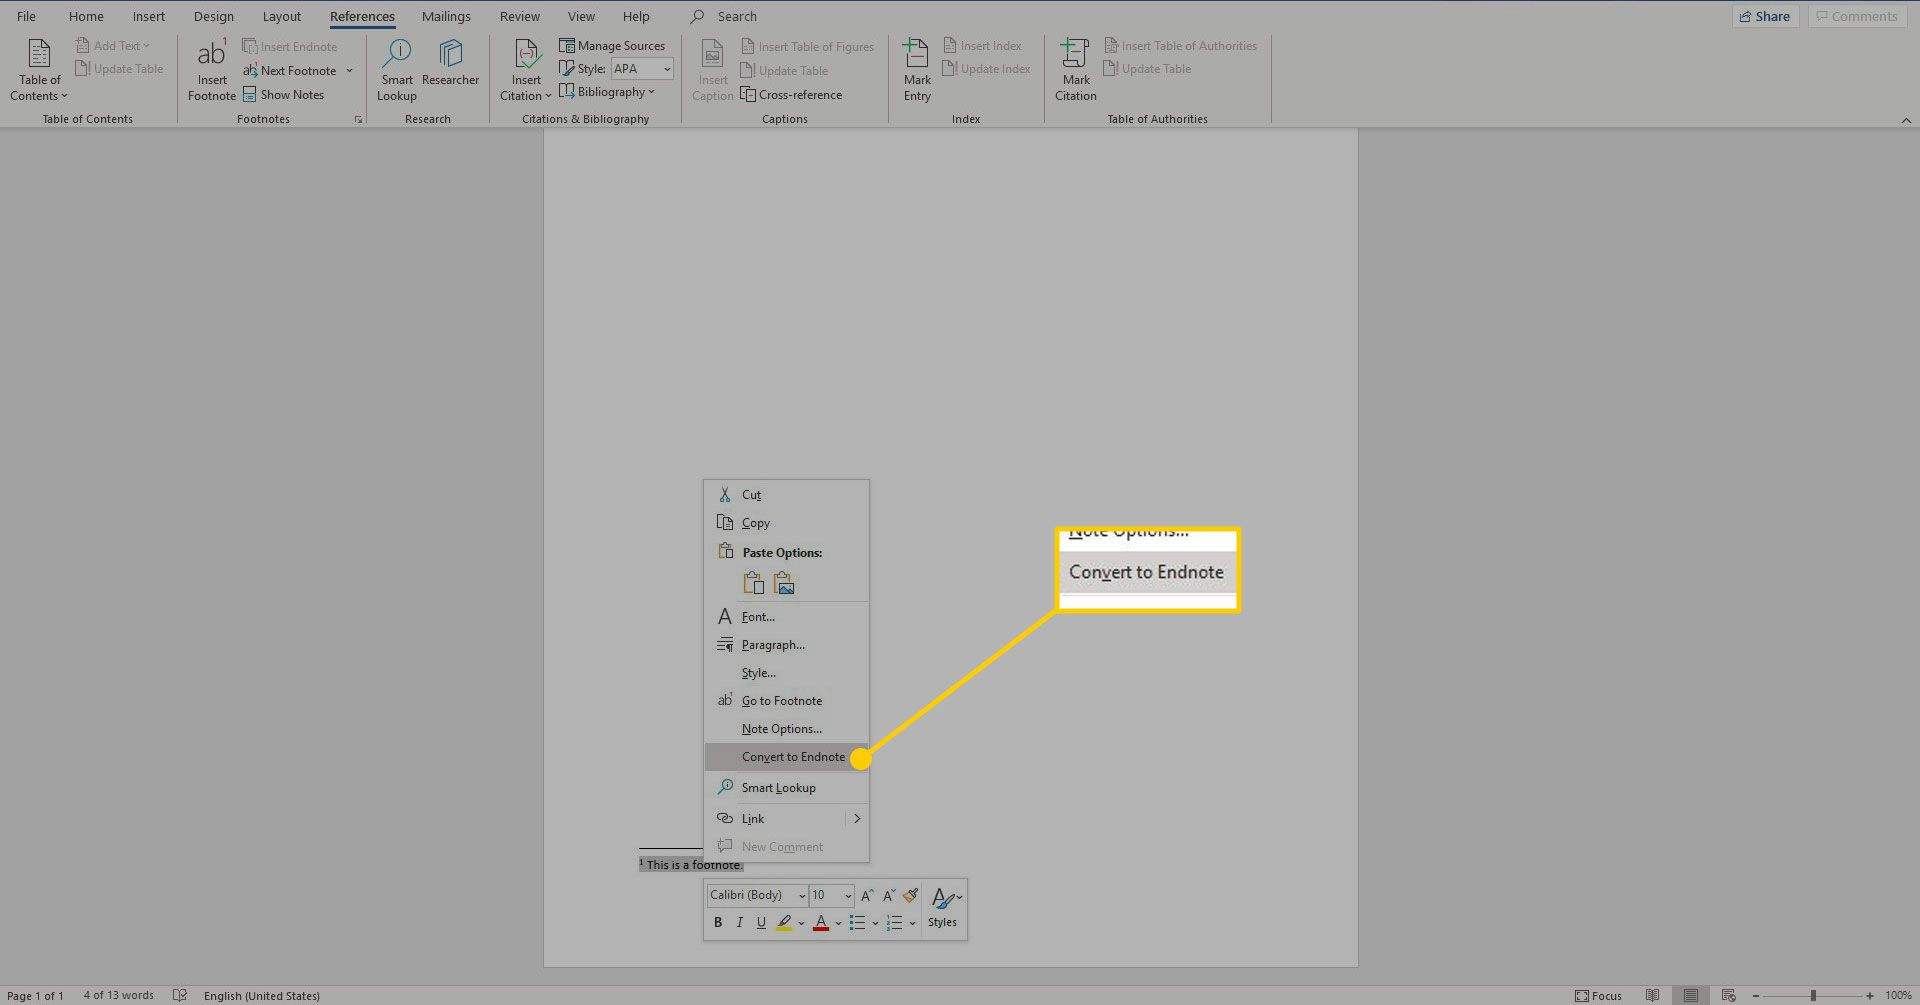 A footnote's option menu in Word with the Convert to Endnote option highlighted